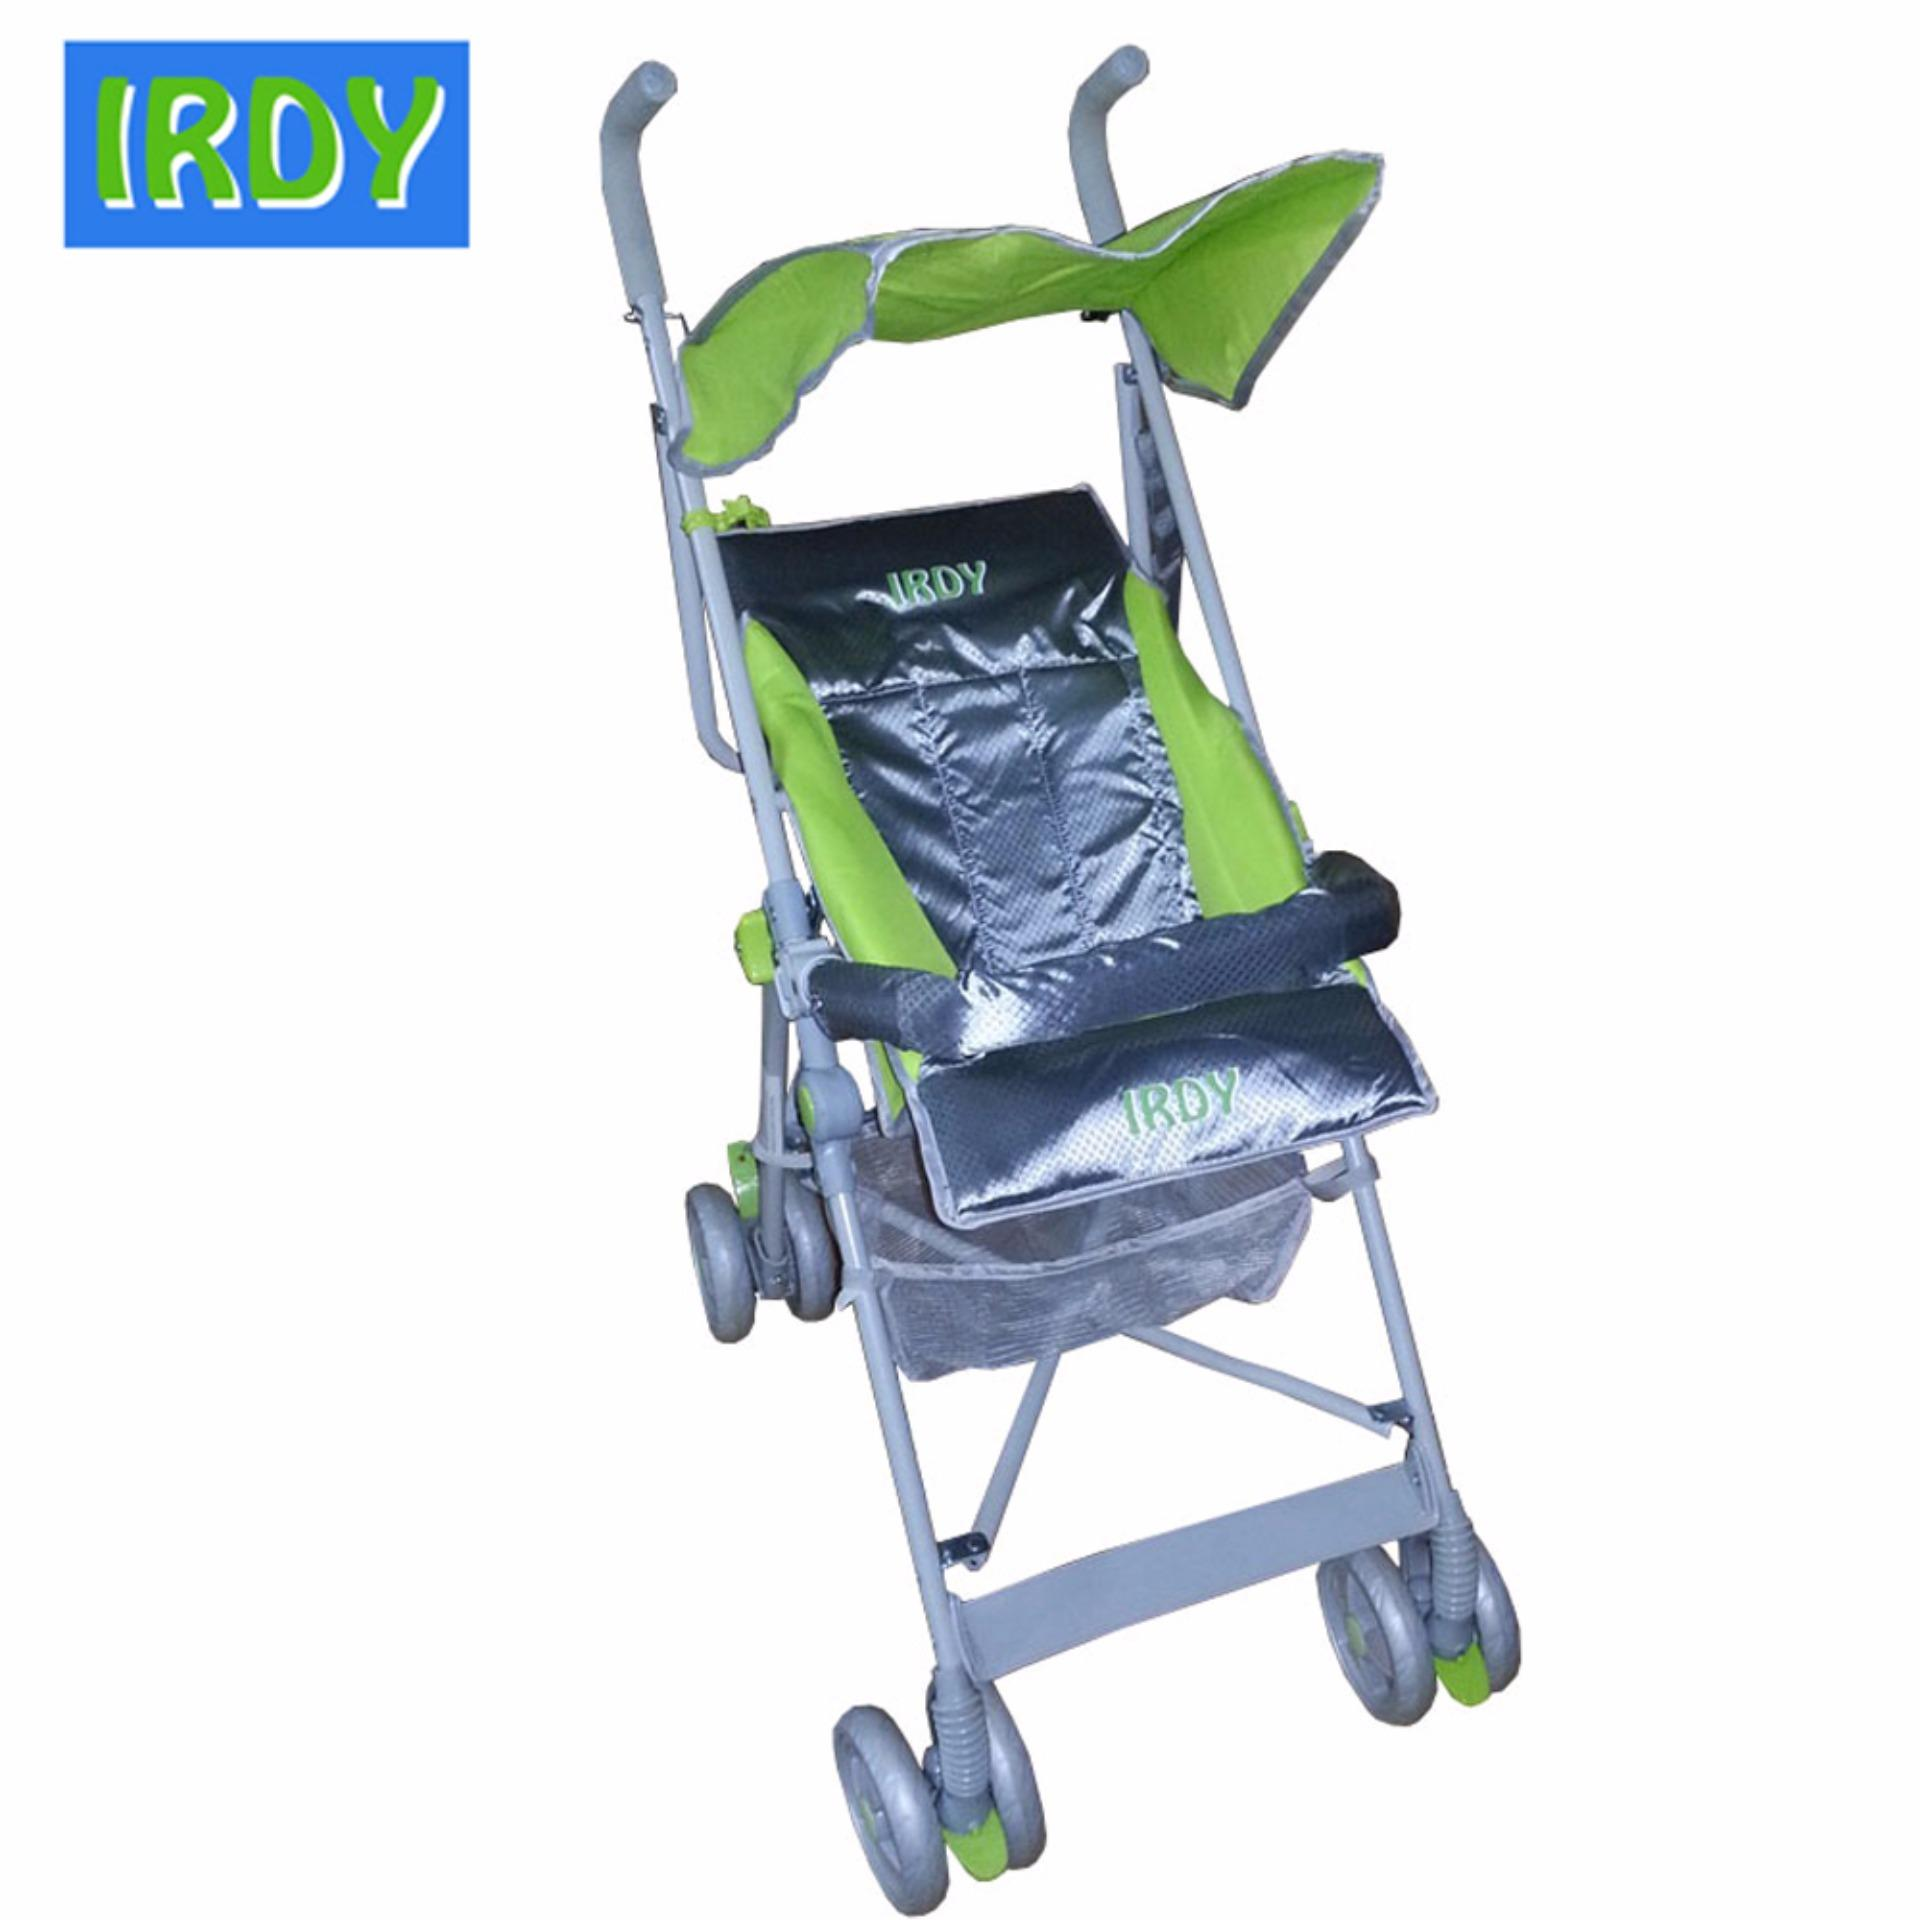 Crib for sale in olongapo - Irdy S 770ab 2 Way Umbrella Stroller With Safety Bar Green